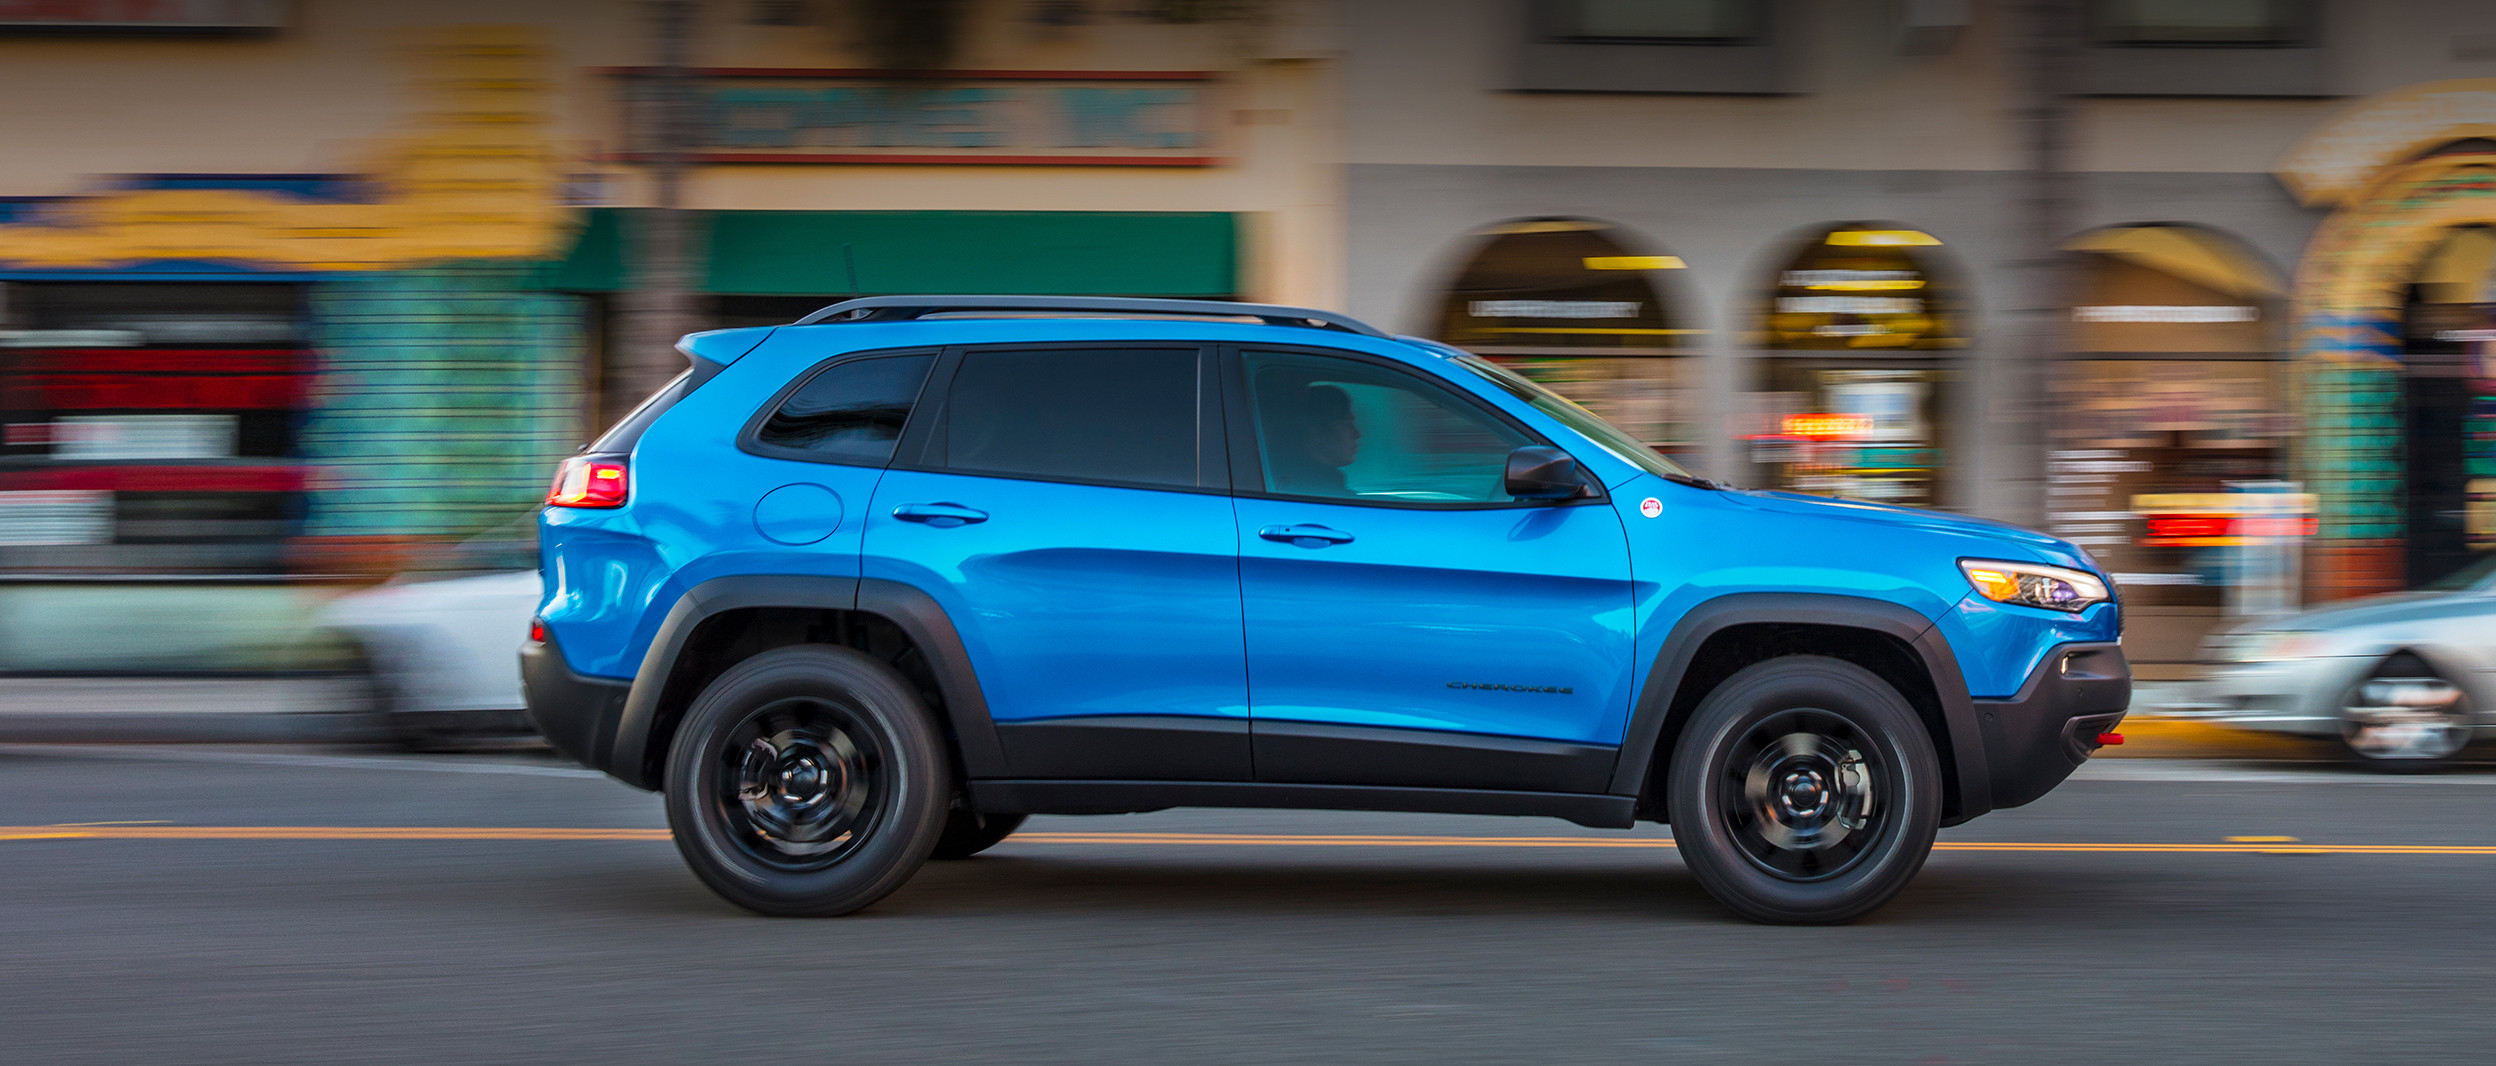 2020 Hydro Blue Pearl Jeep Cherokee driving on a country road through plains in the sunset